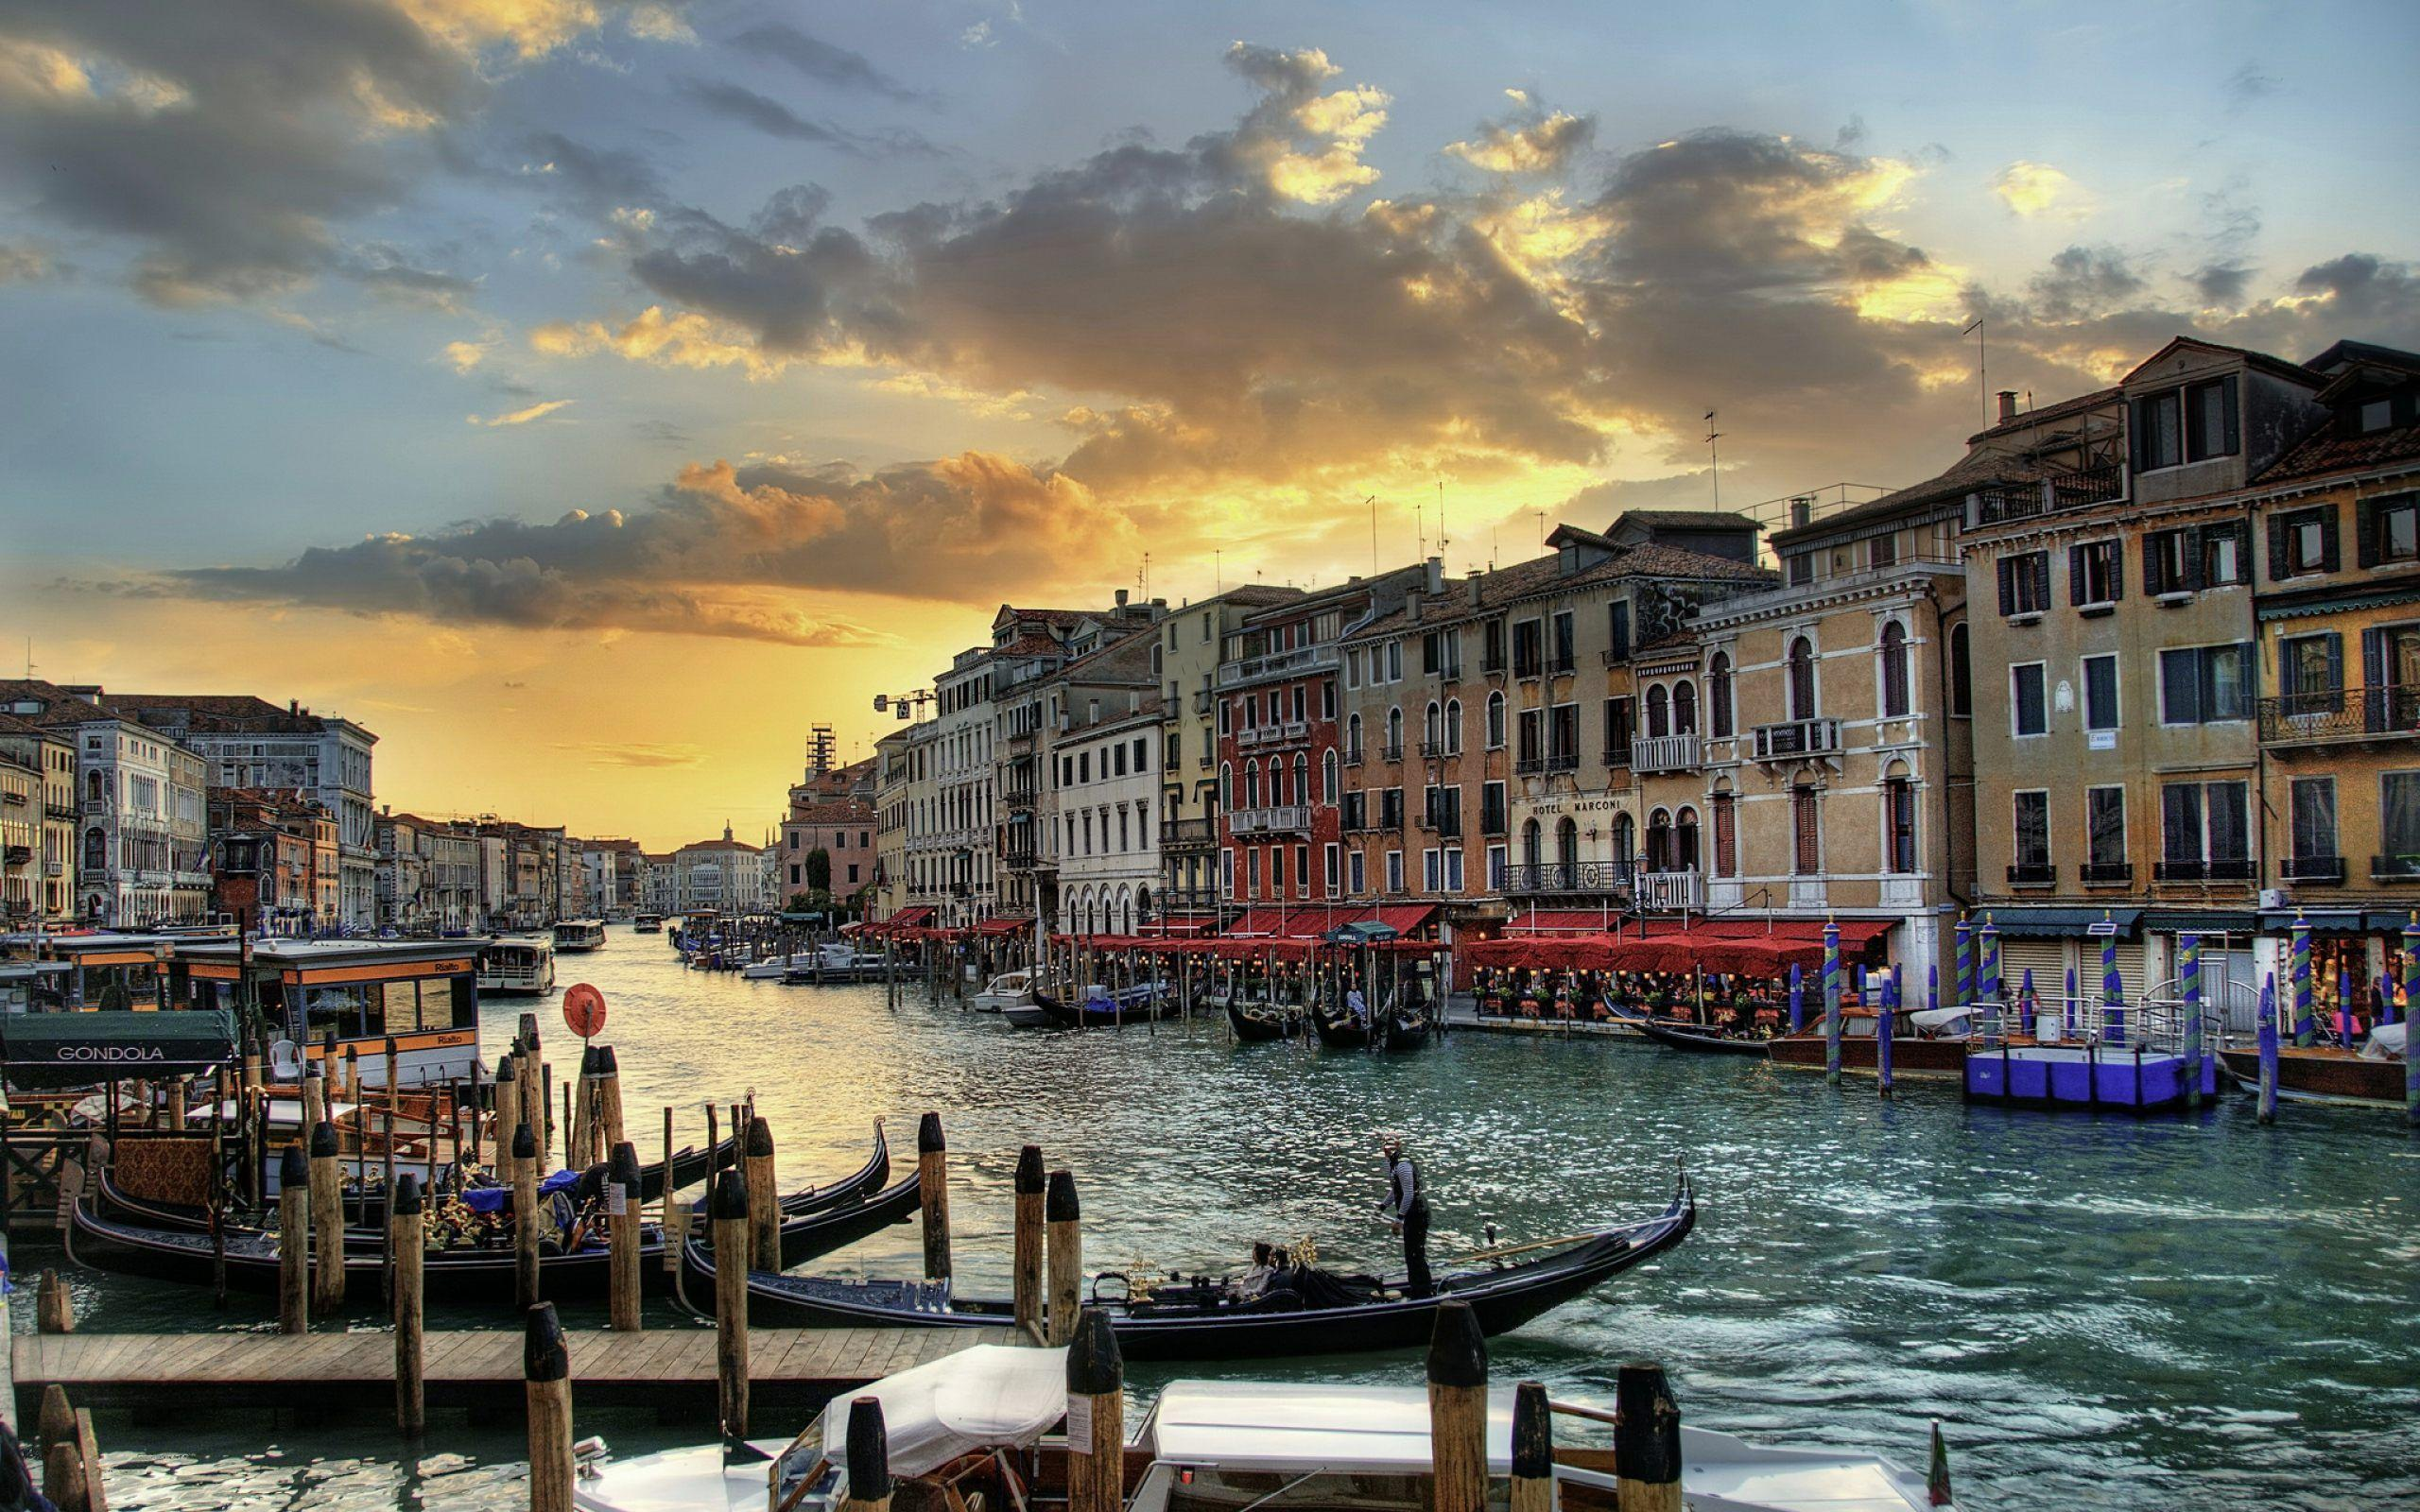 Venice Italy Wallpapers Download HD For Desktop and Mobile